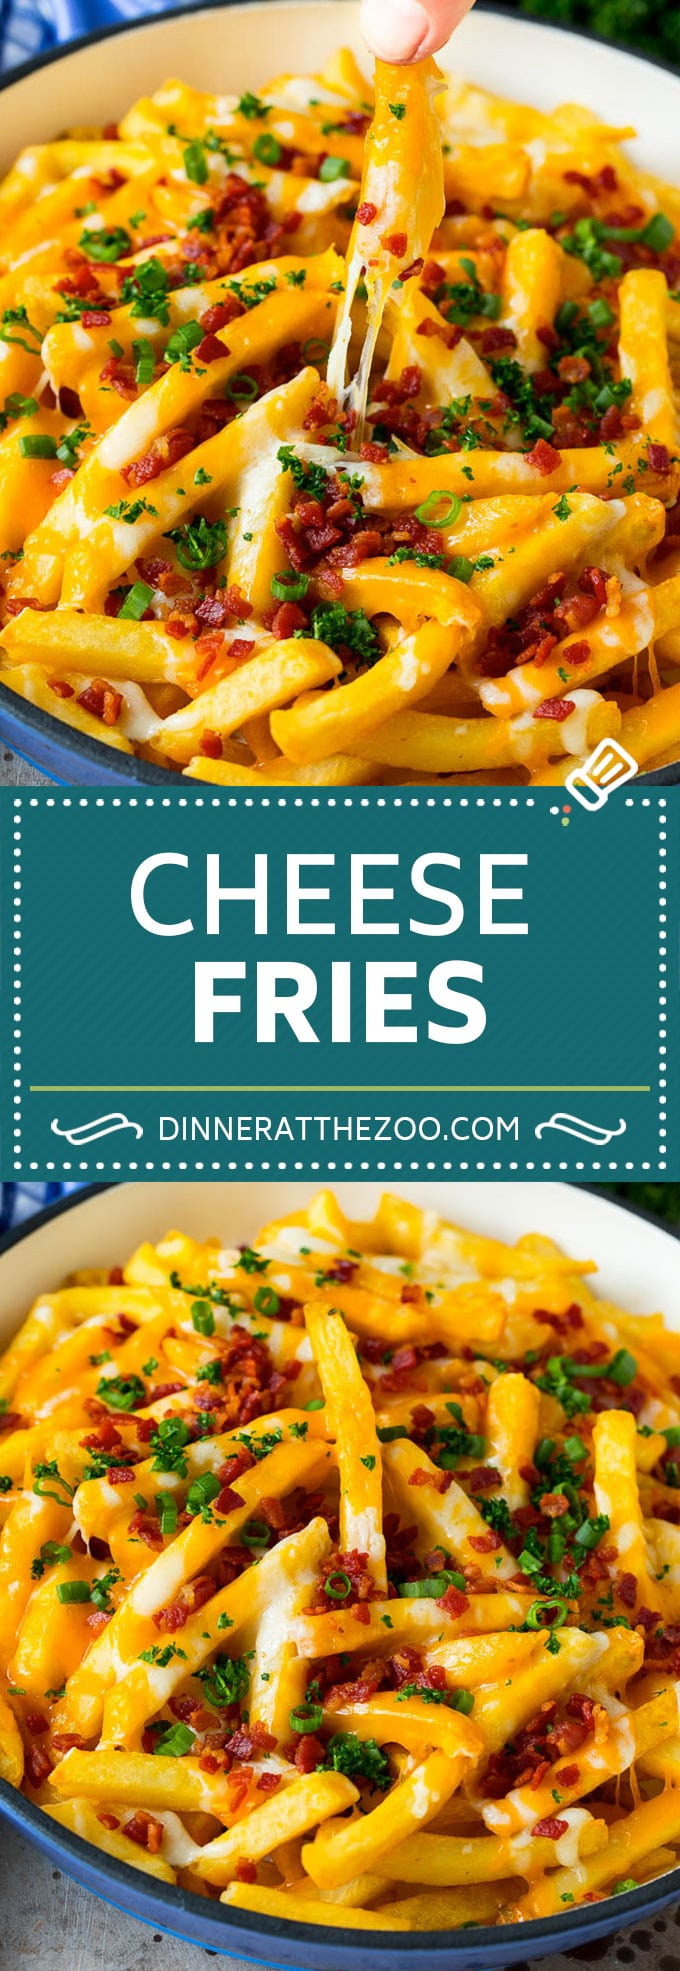 These cheese fries are crispy potatoes topped with plenty of melted cheese, bacon and herbs. #fries #dinneratthezoo